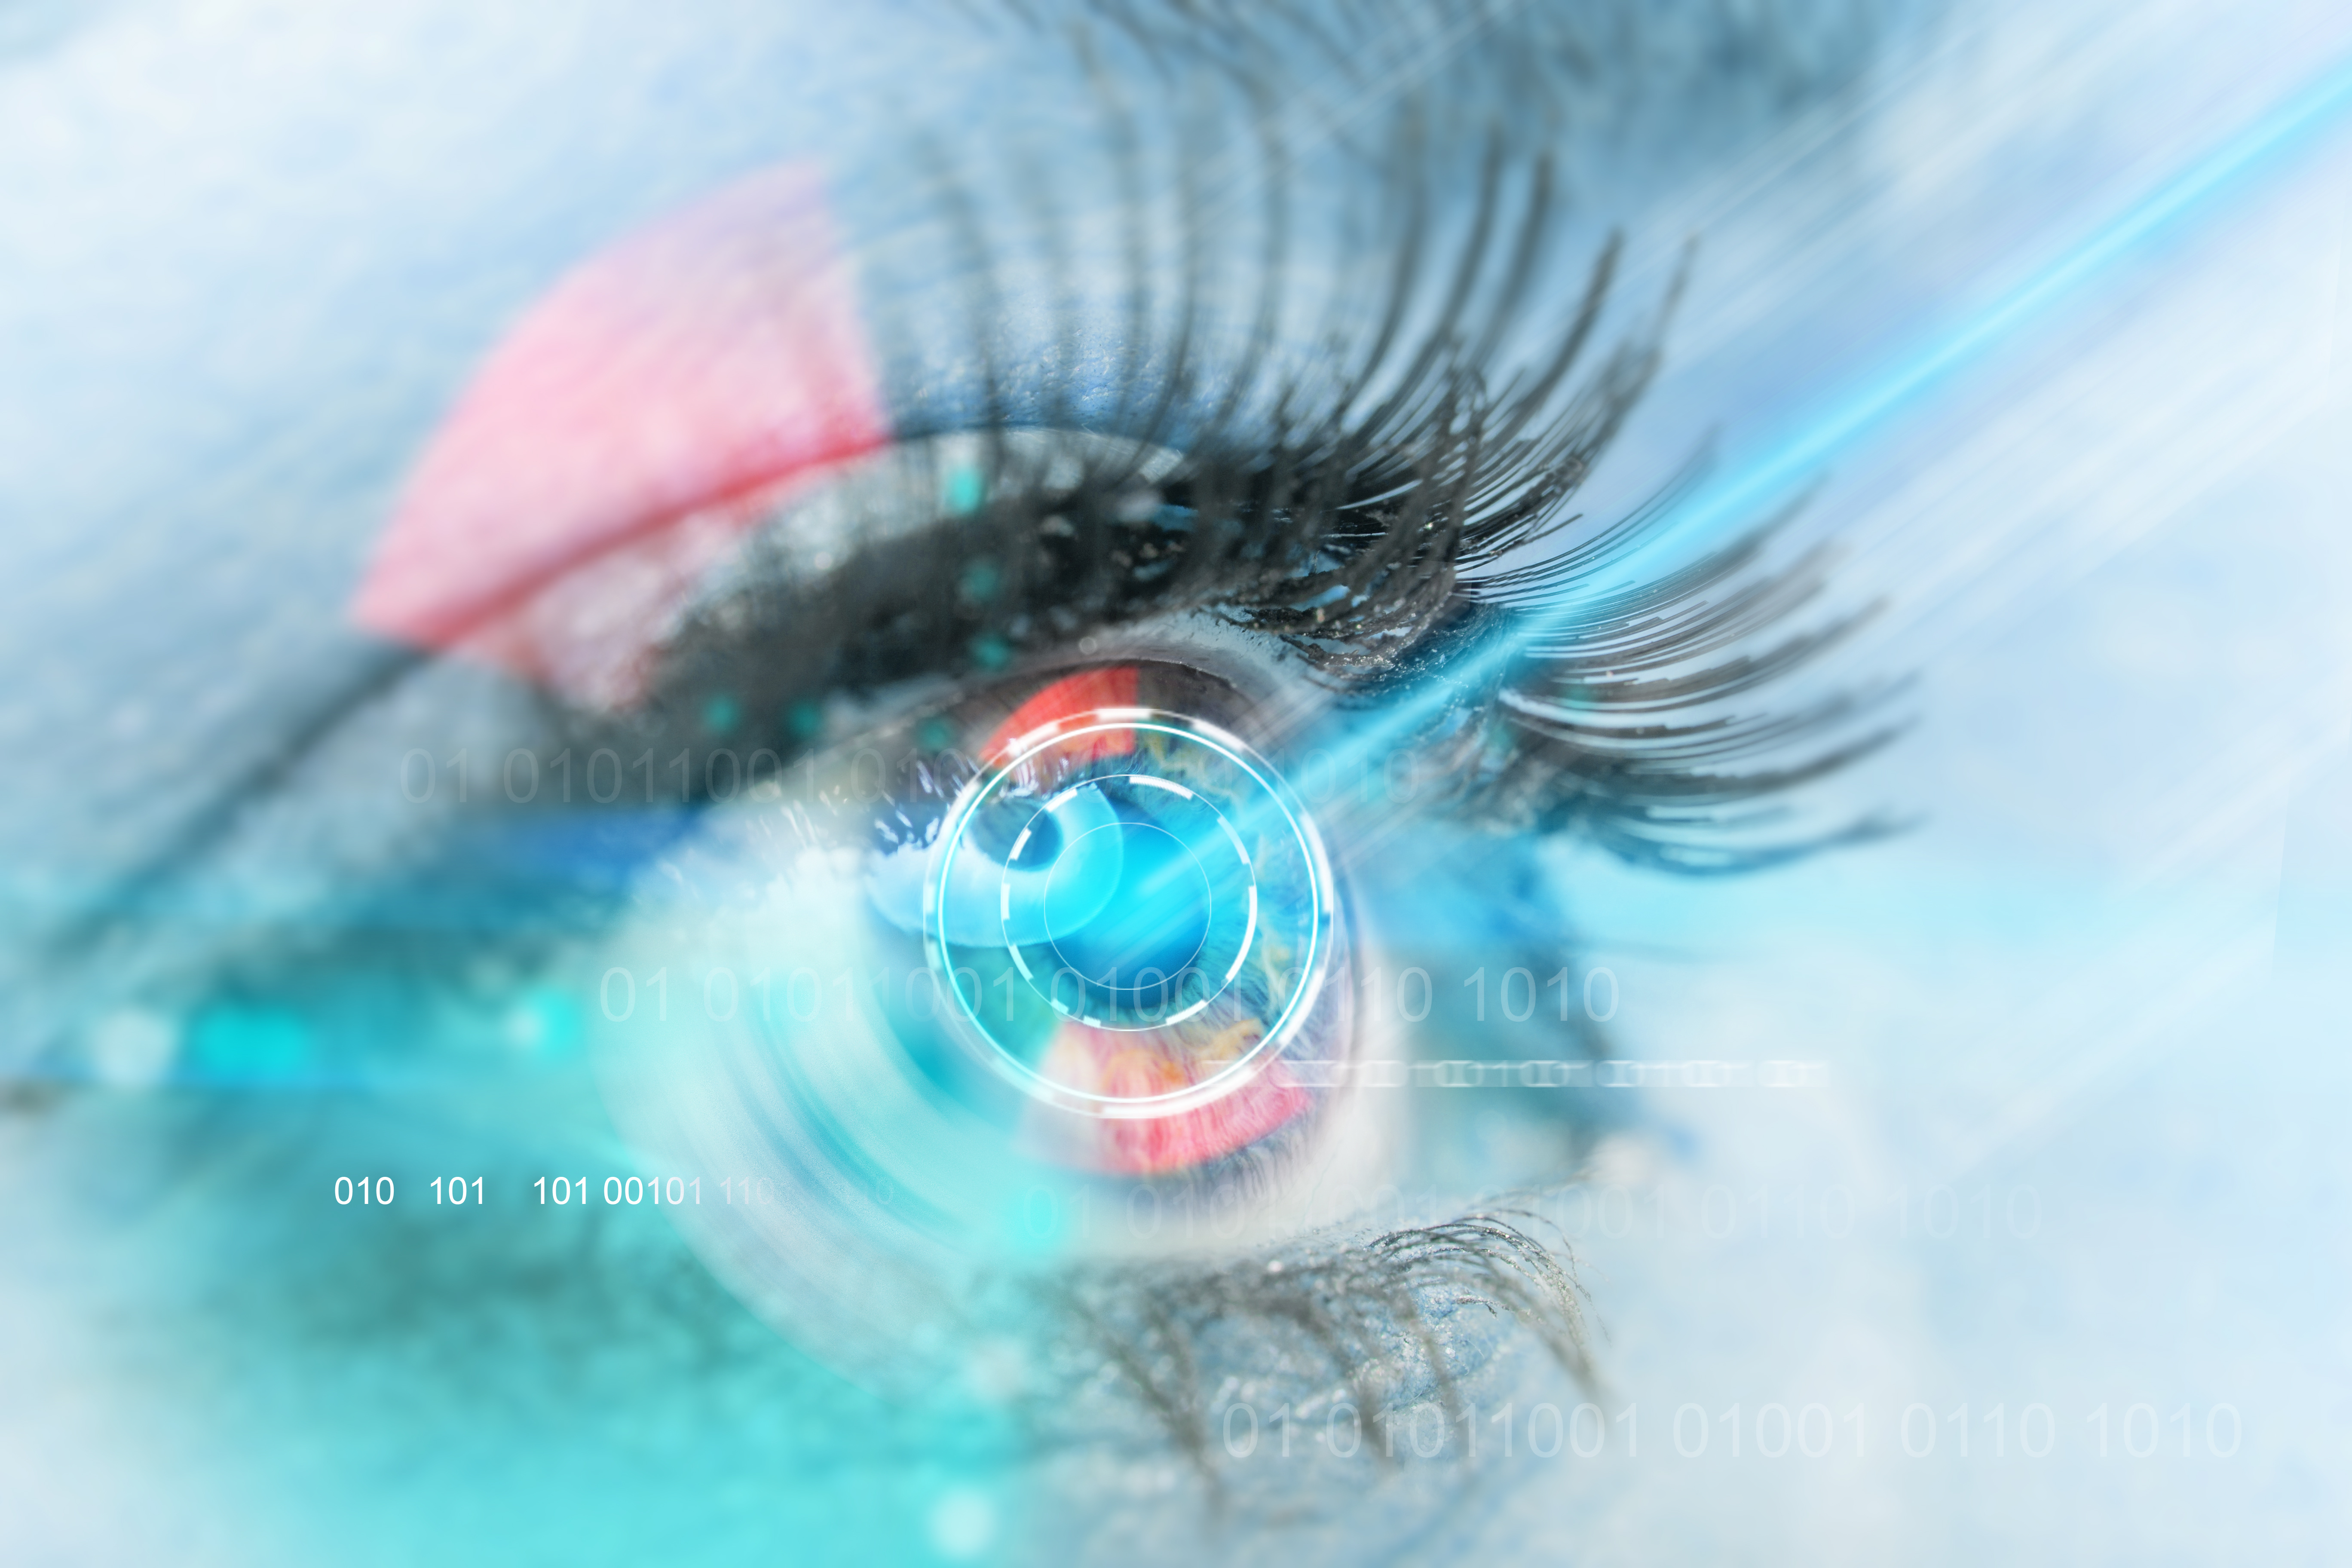 eye scan interface - copyrighted by Lukas Gojda at stock.adobe.com-ID 88816746